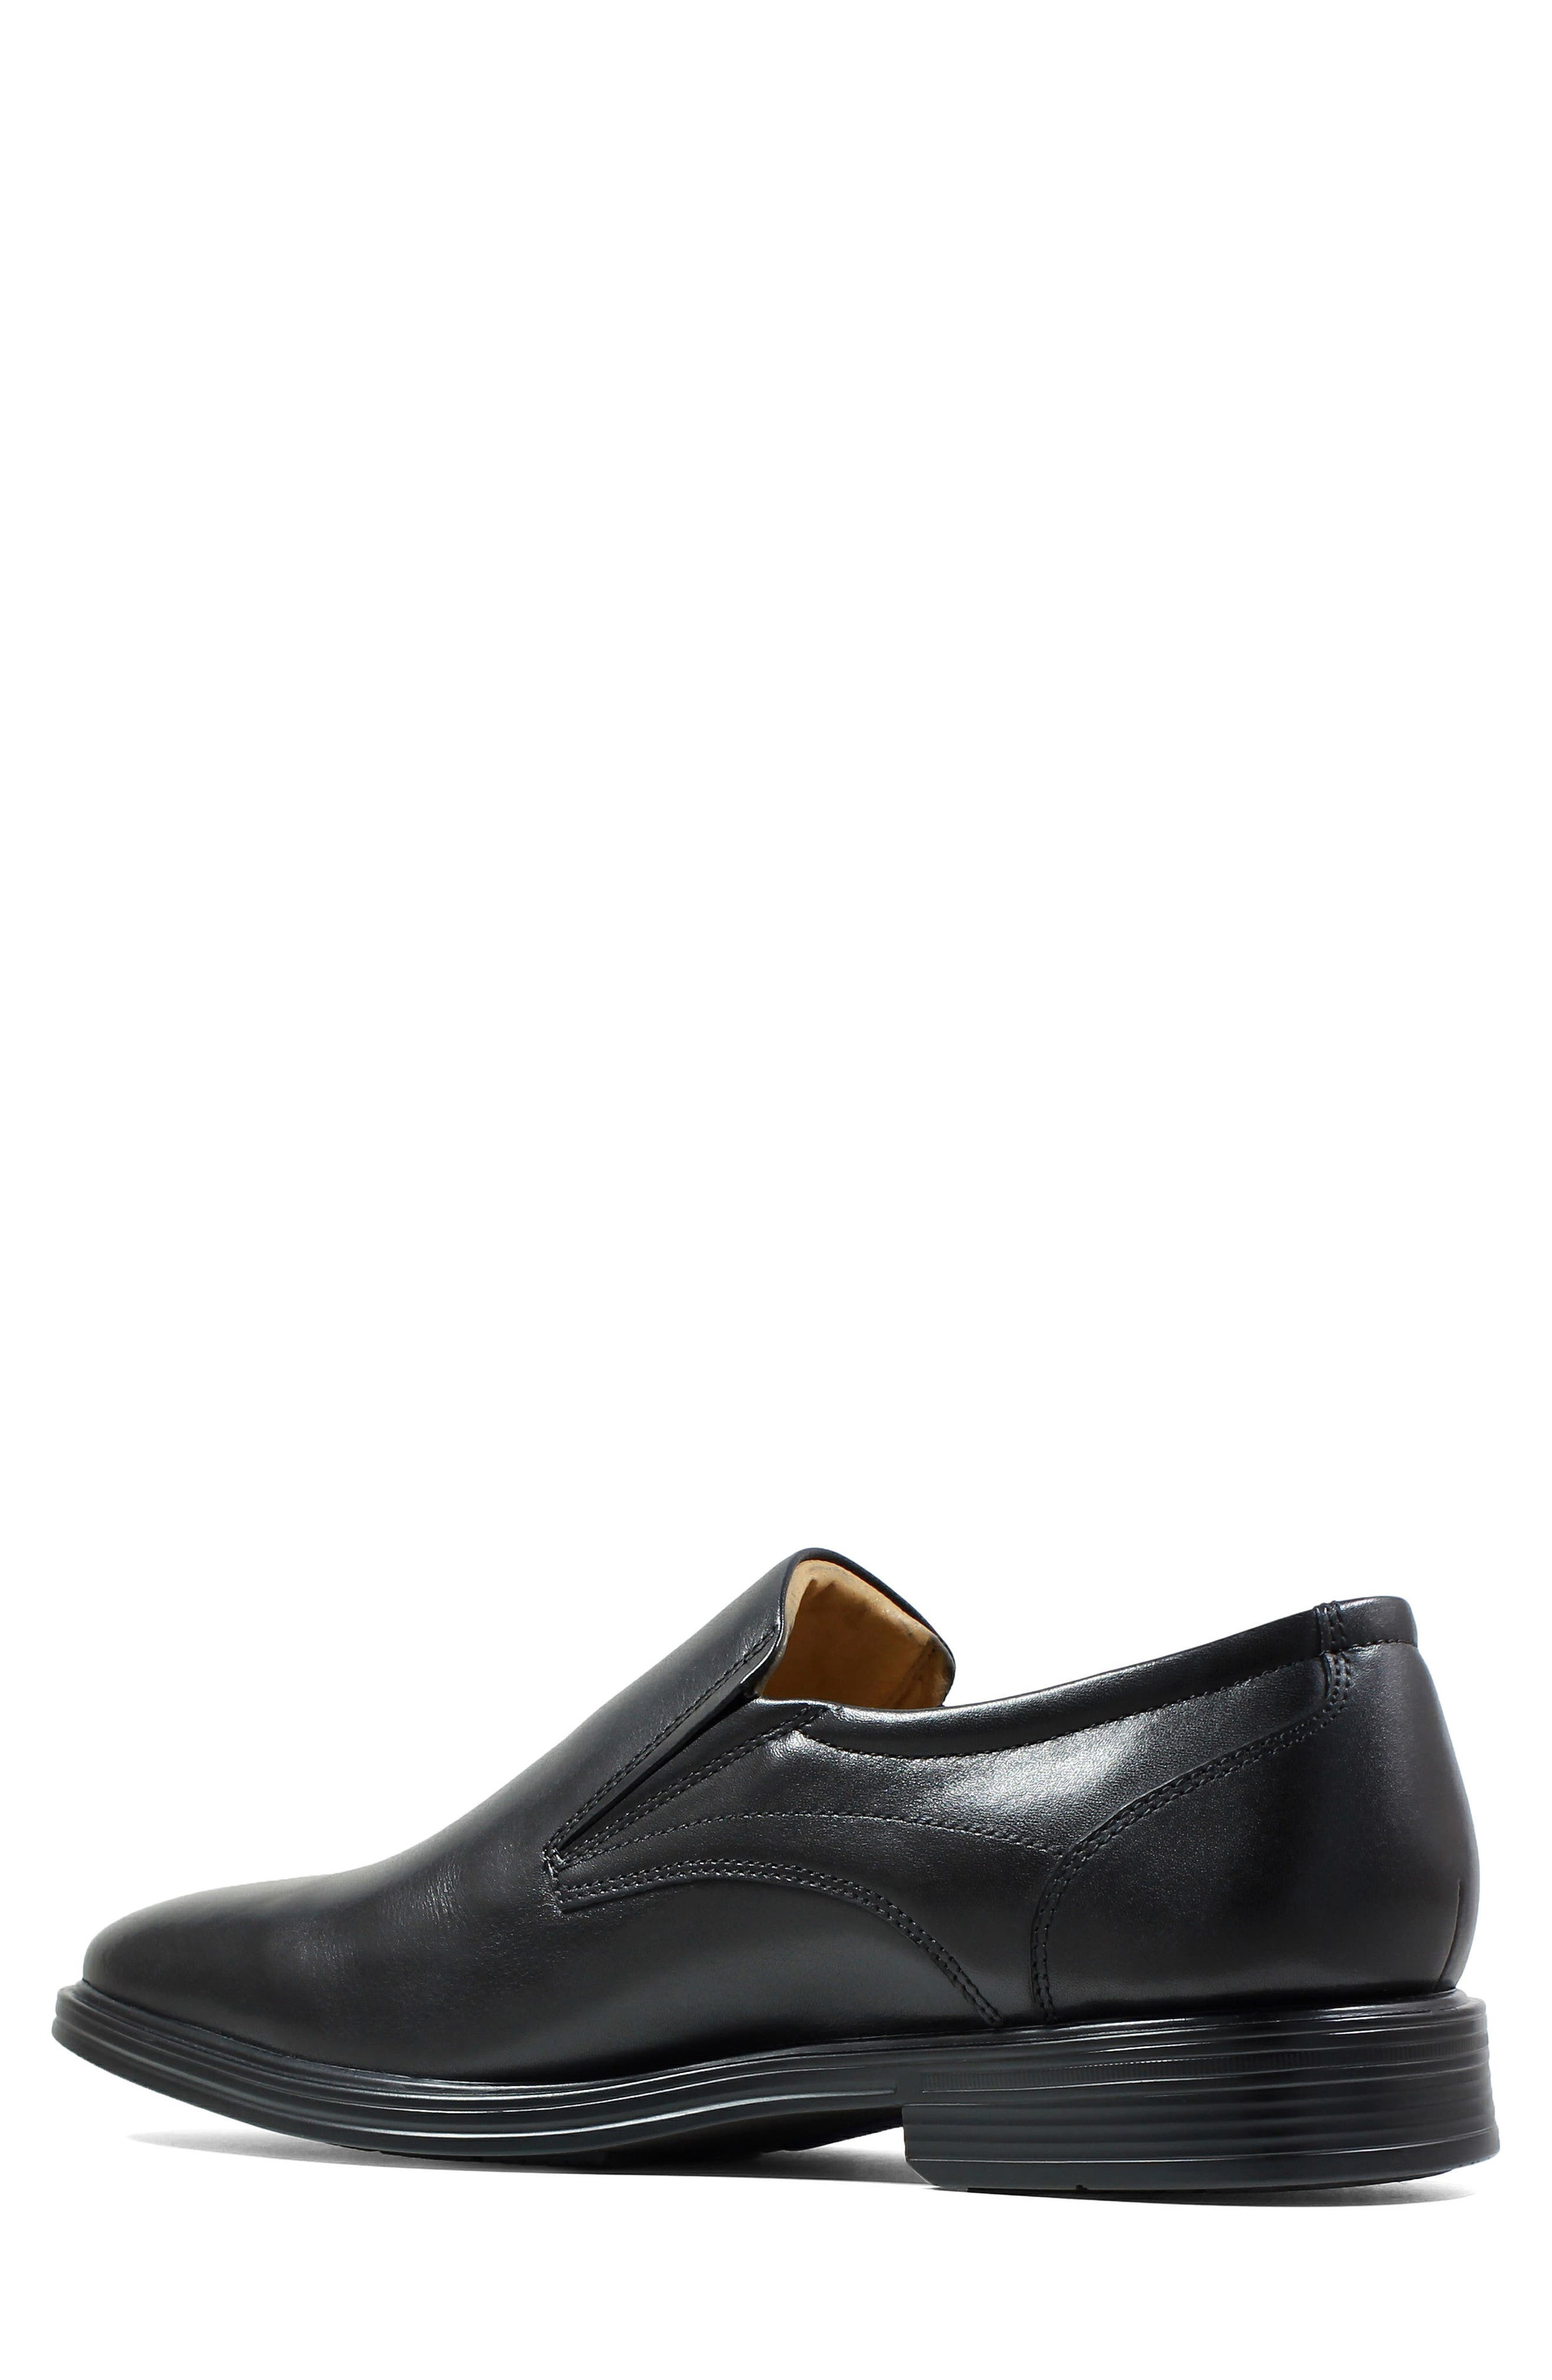 Heights Venetian Loafer,                             Alternate thumbnail 2, color,                             Black